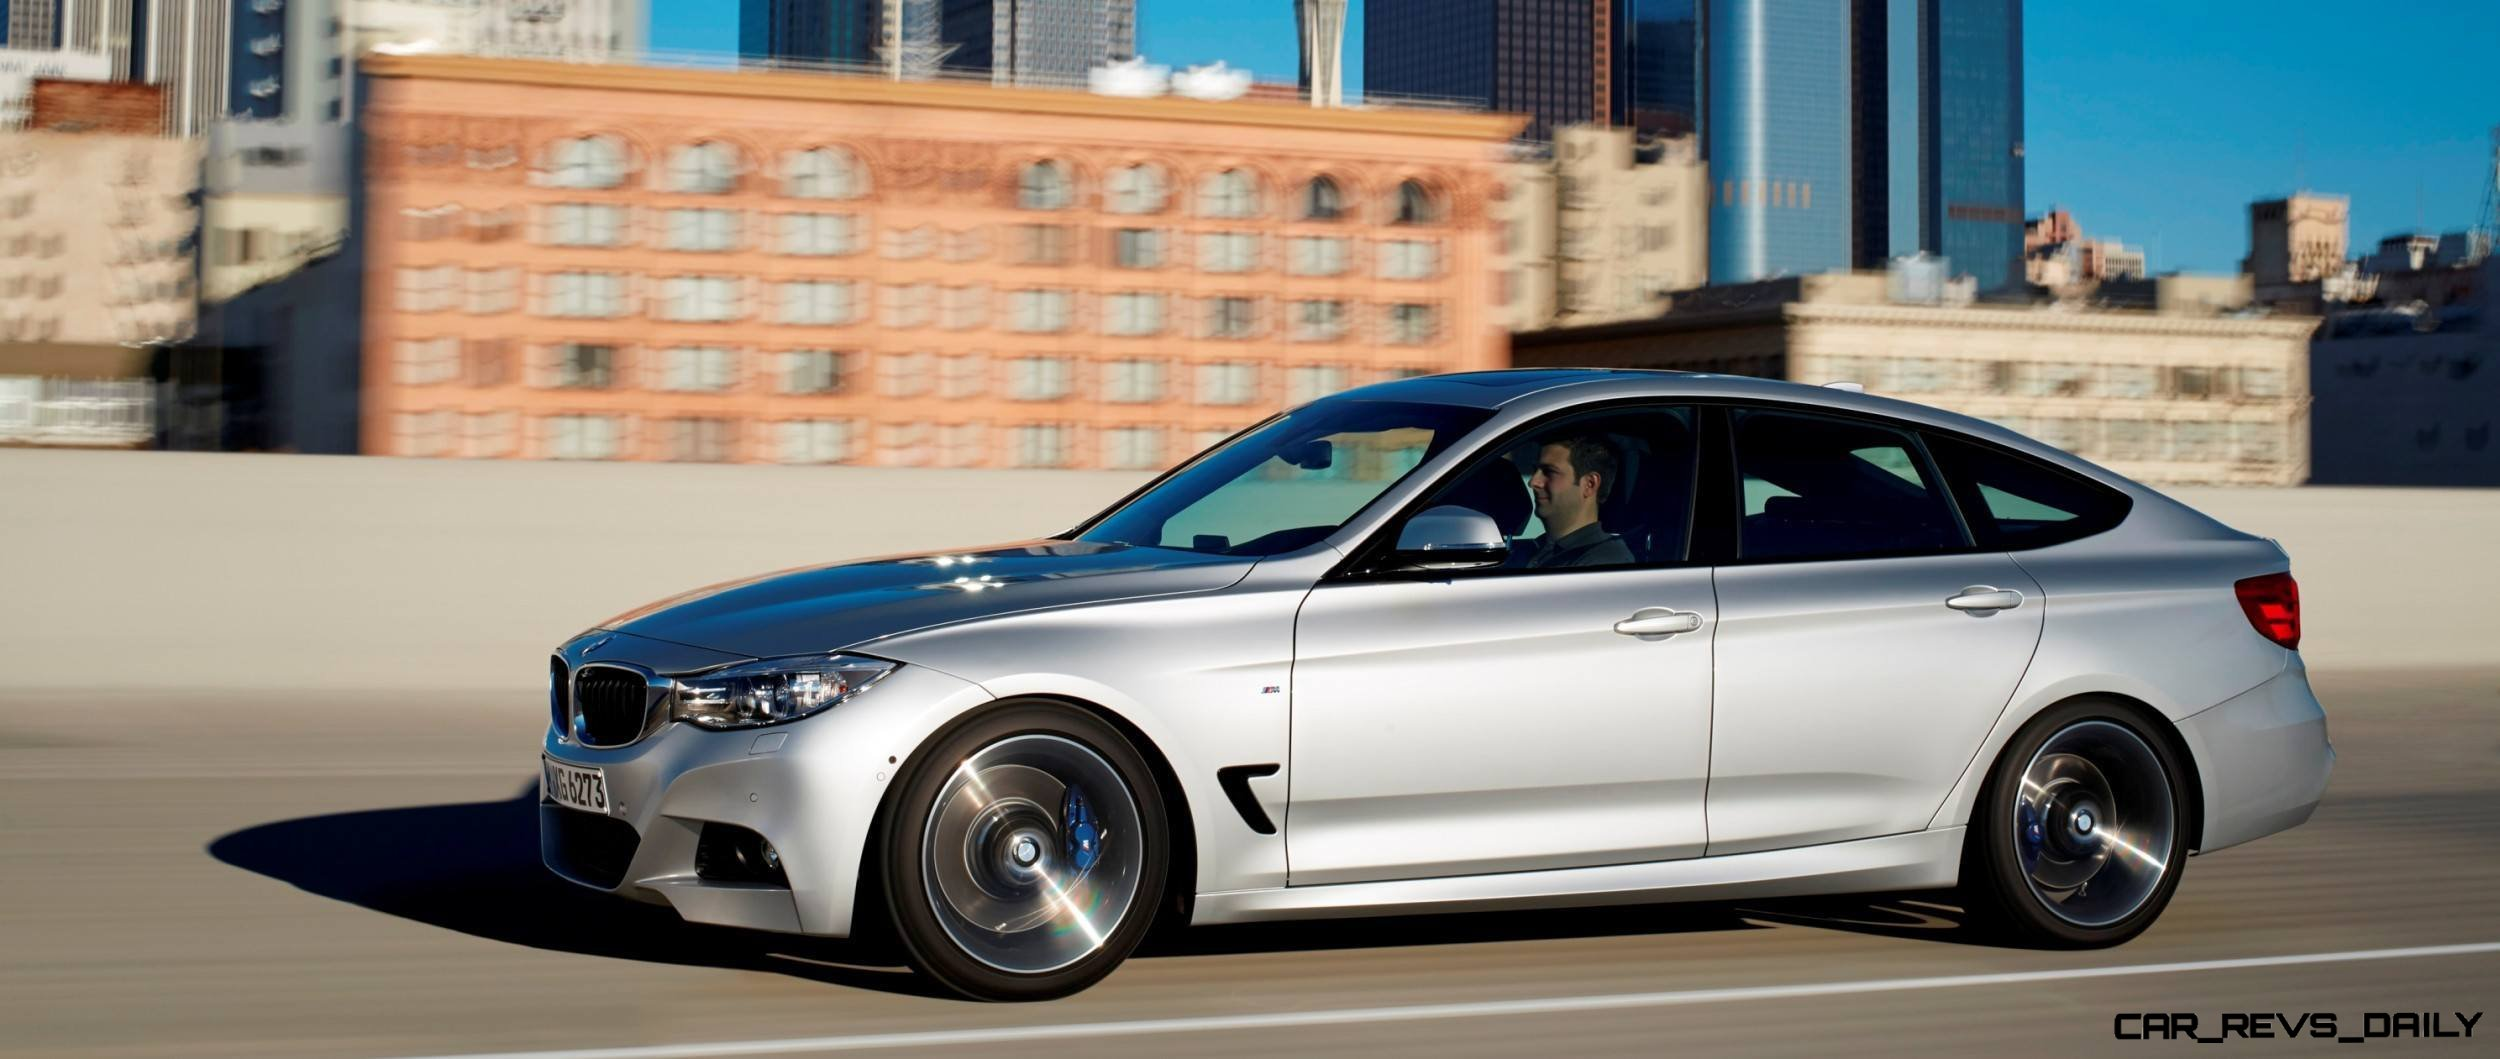 Best of Awards  1000 miles at 100MPH  2014 M Sport BMW 335i GT 52